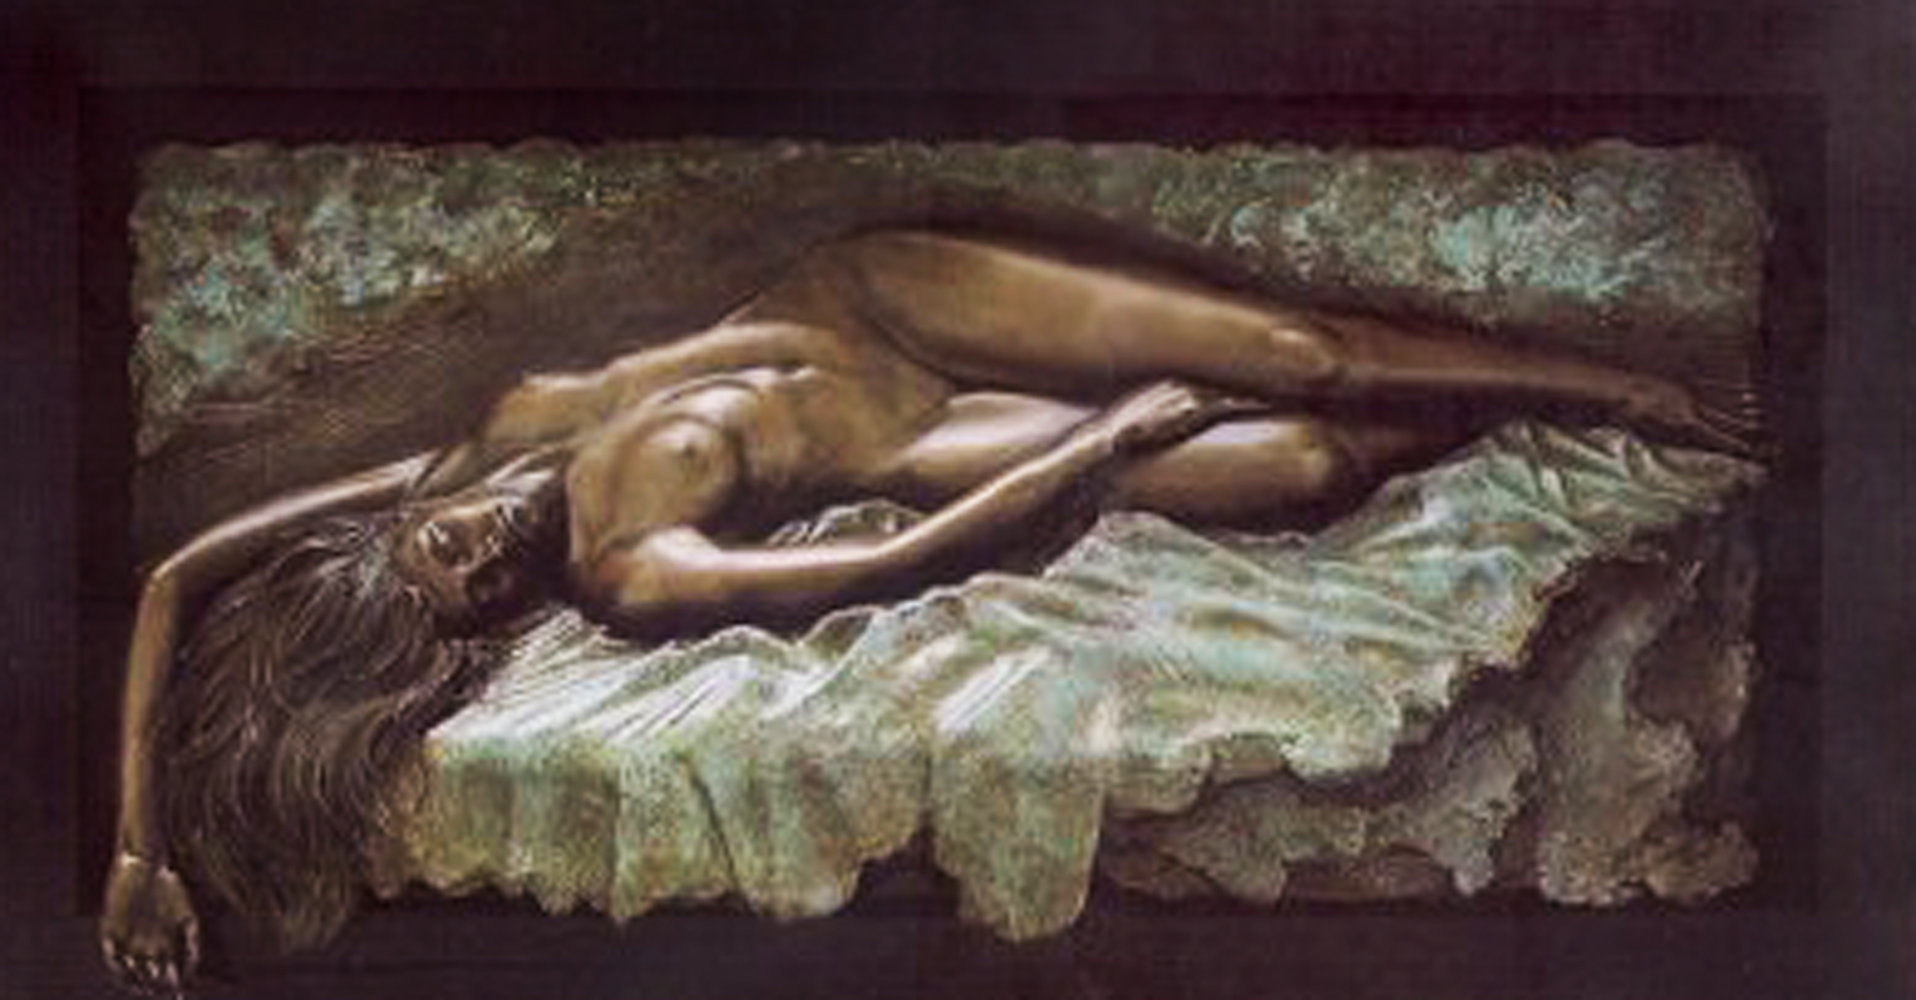 Harmony Bronze Sculpture 1989